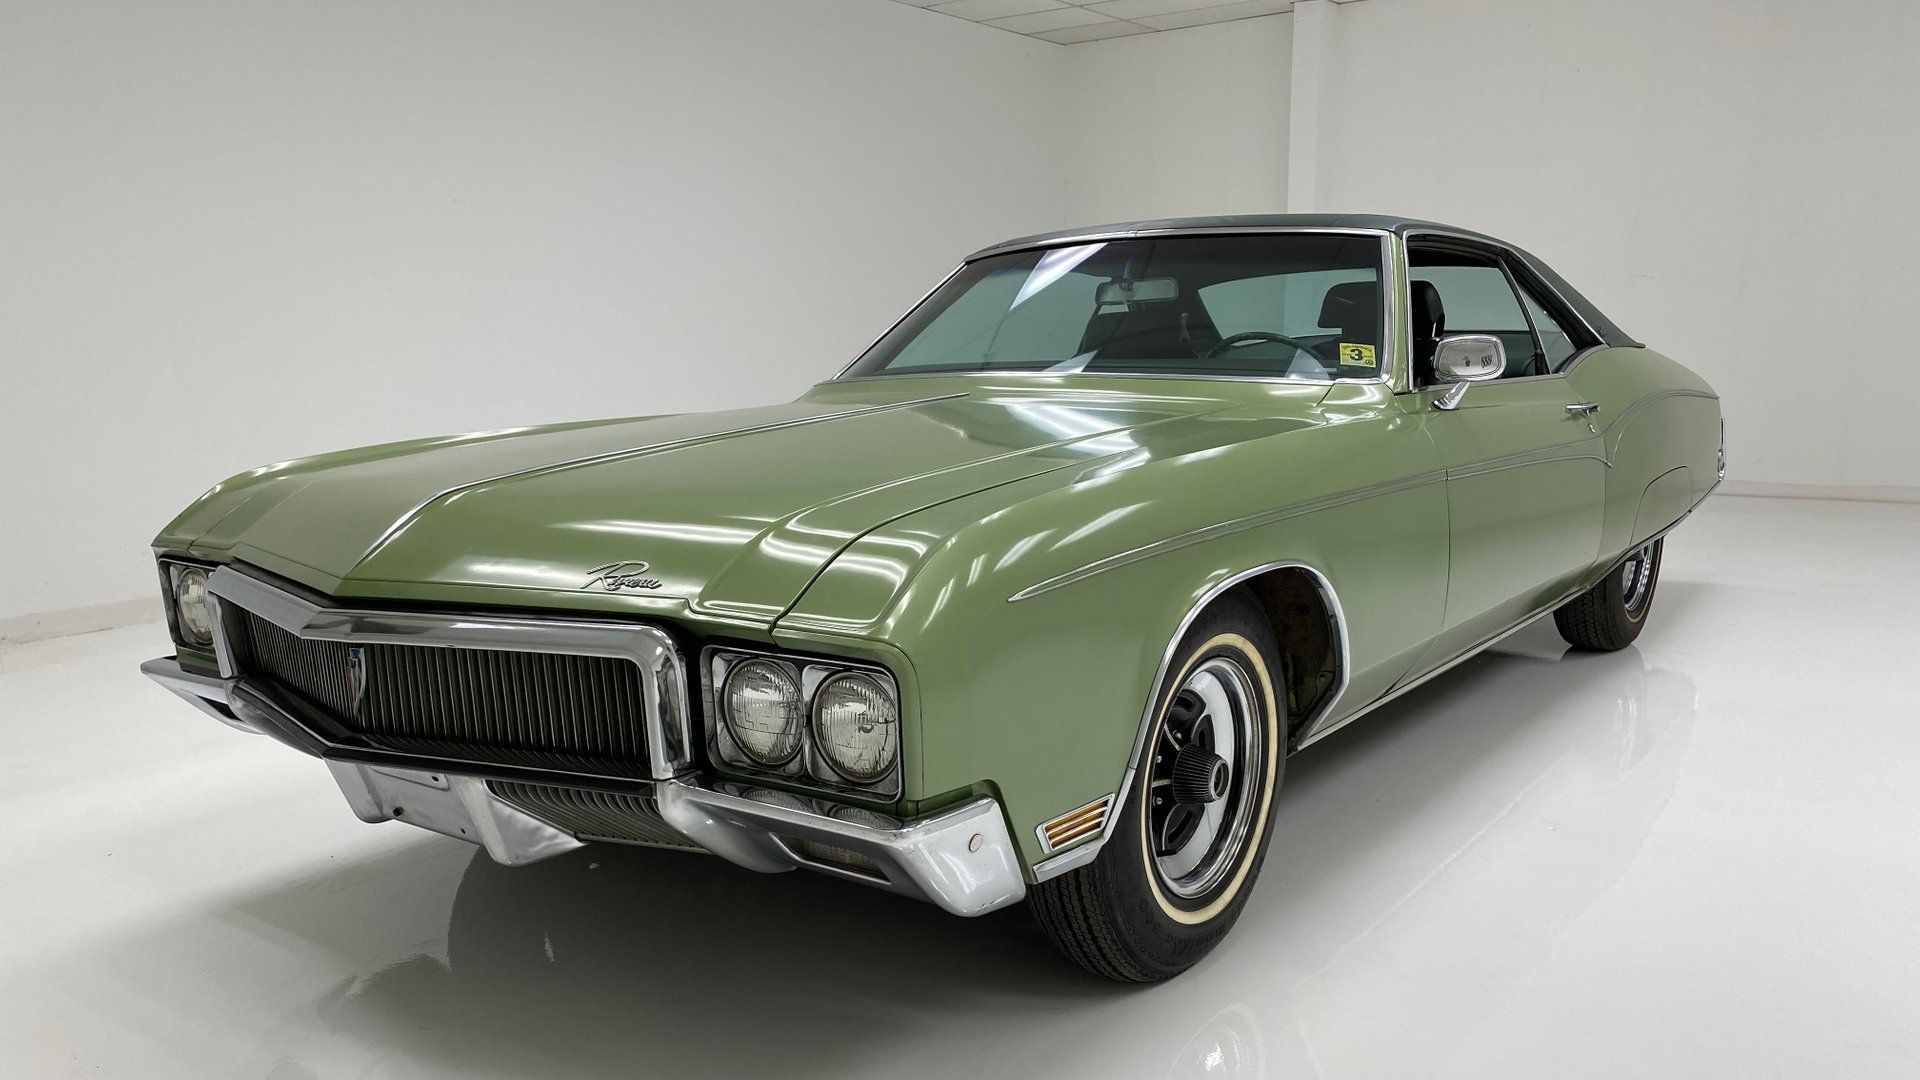 Original 1970 Buick Riviera Provides An Affordable Option 2021 Buick Riviera Custom, Price, Parts